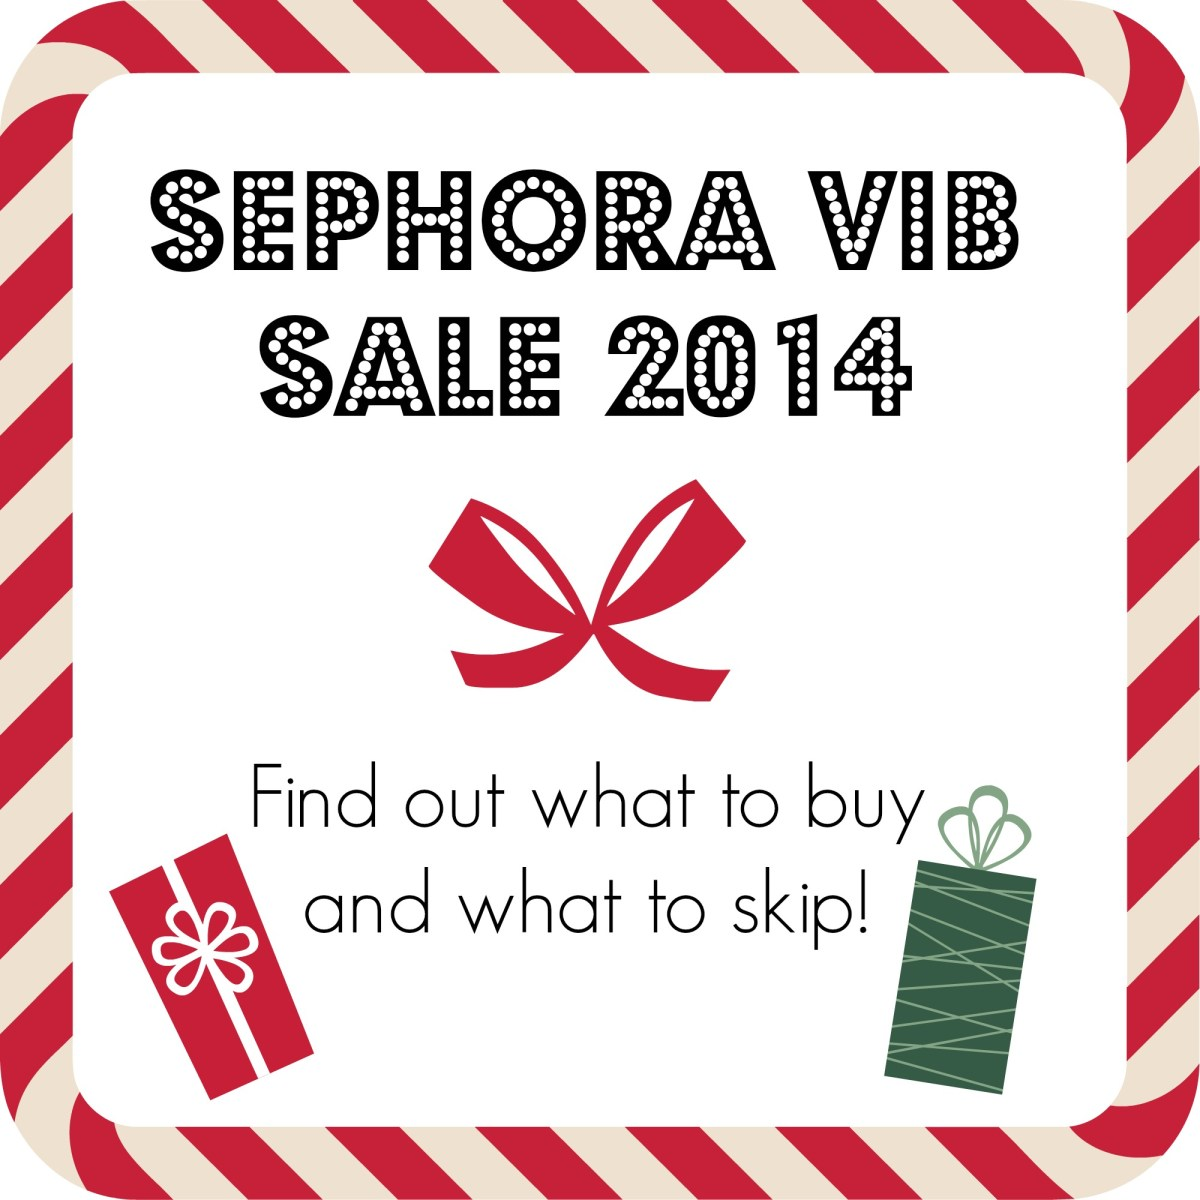 Sephora VIB Sale What to Buy and What to Skip